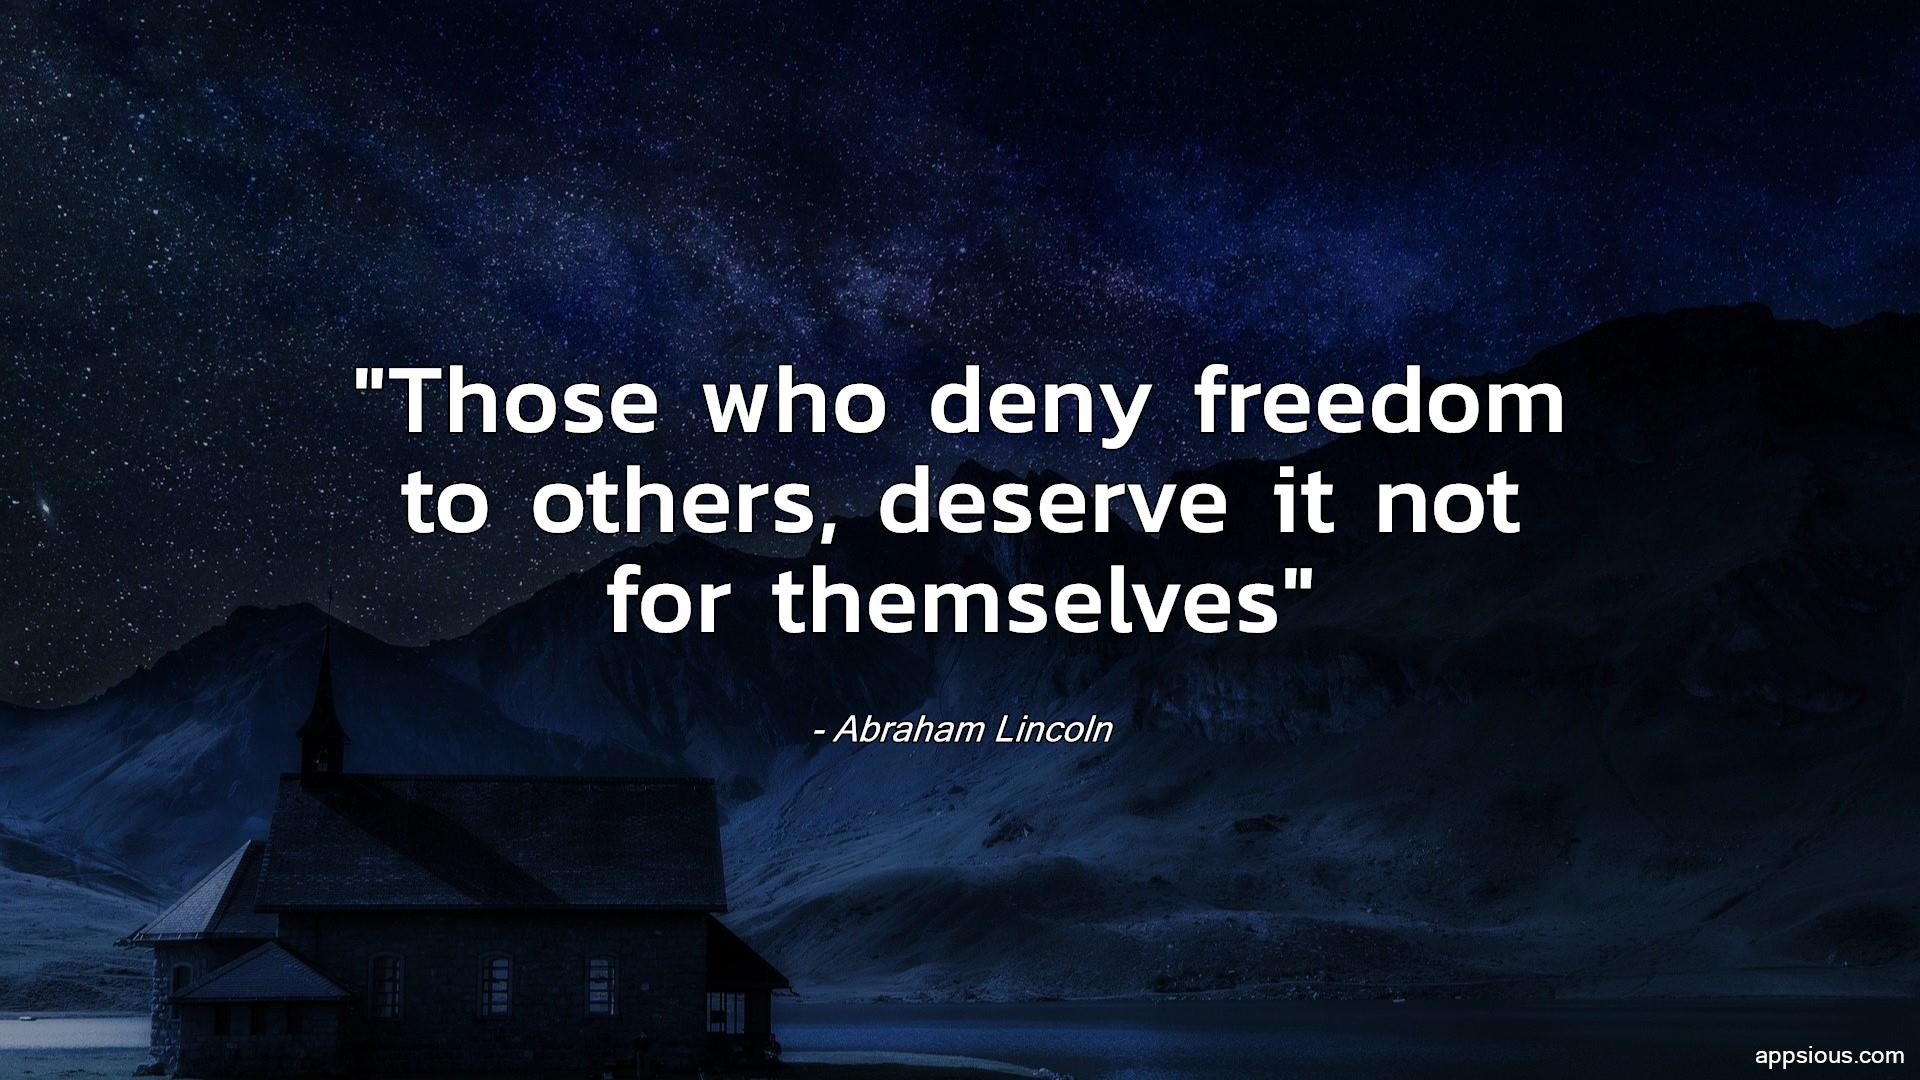 Those who deny freedom to others, deserve it not for themselves